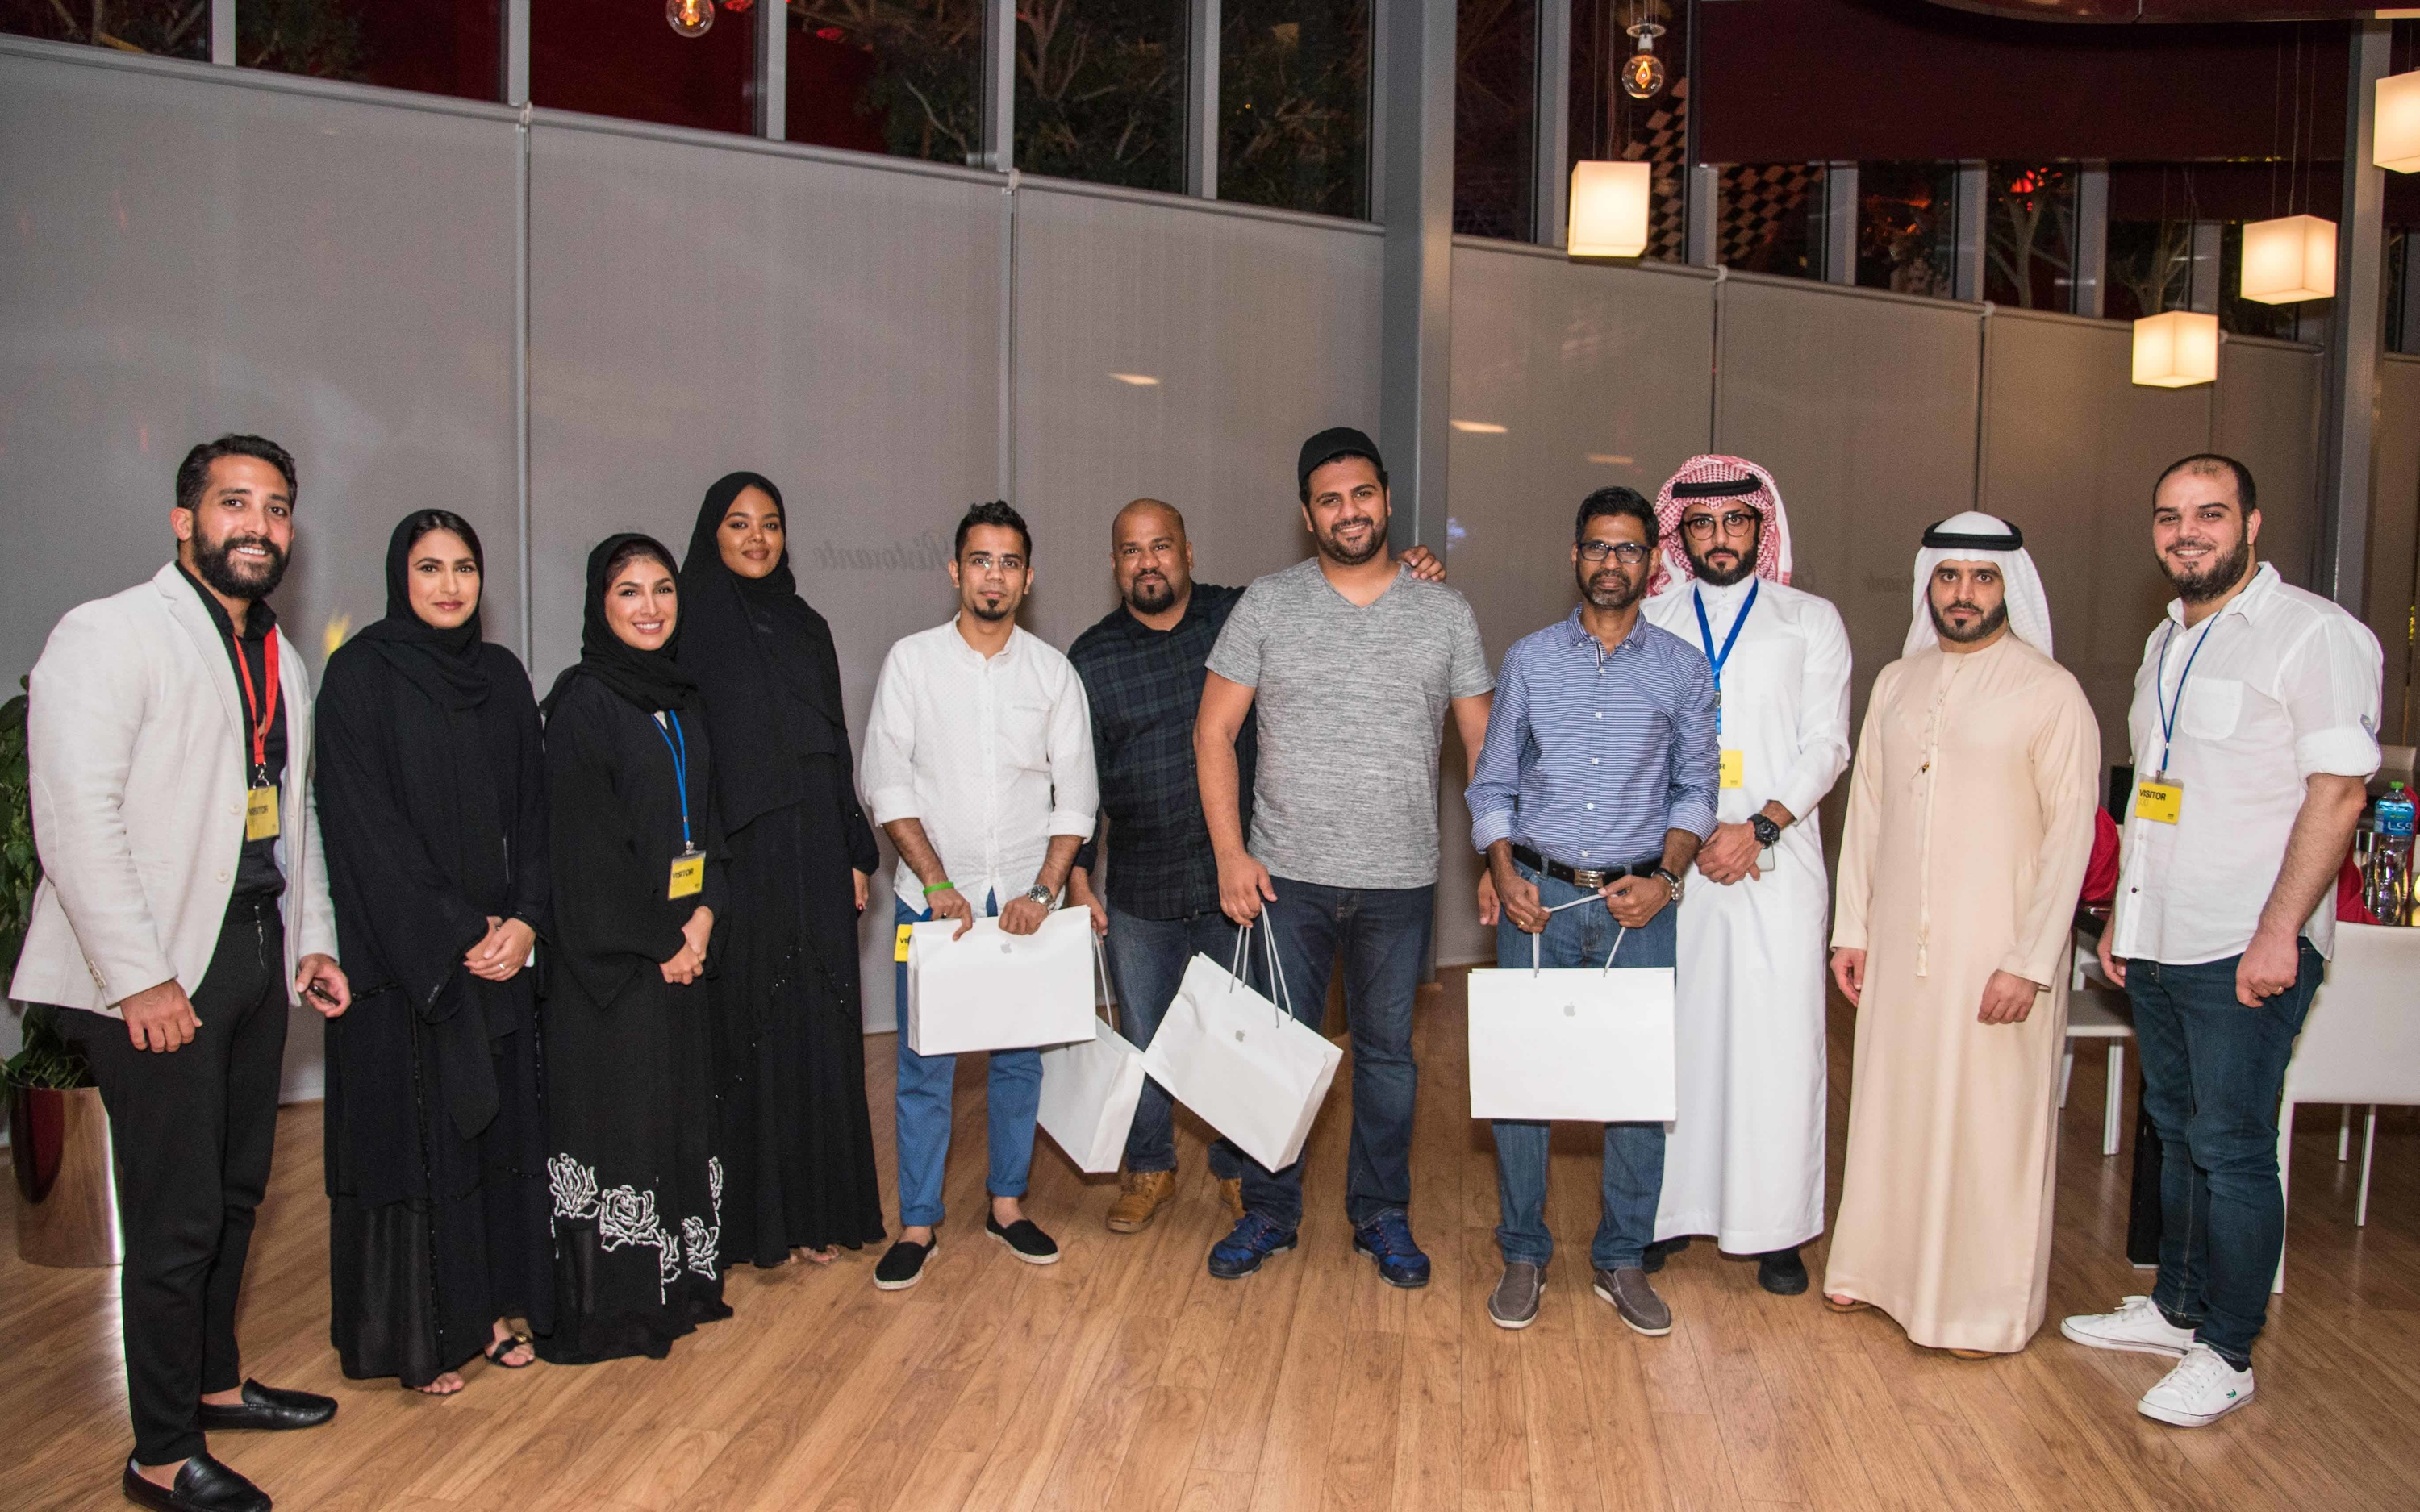 Abu Dhabi's Department of Culture and Tourism launches city-wide treasure hunt